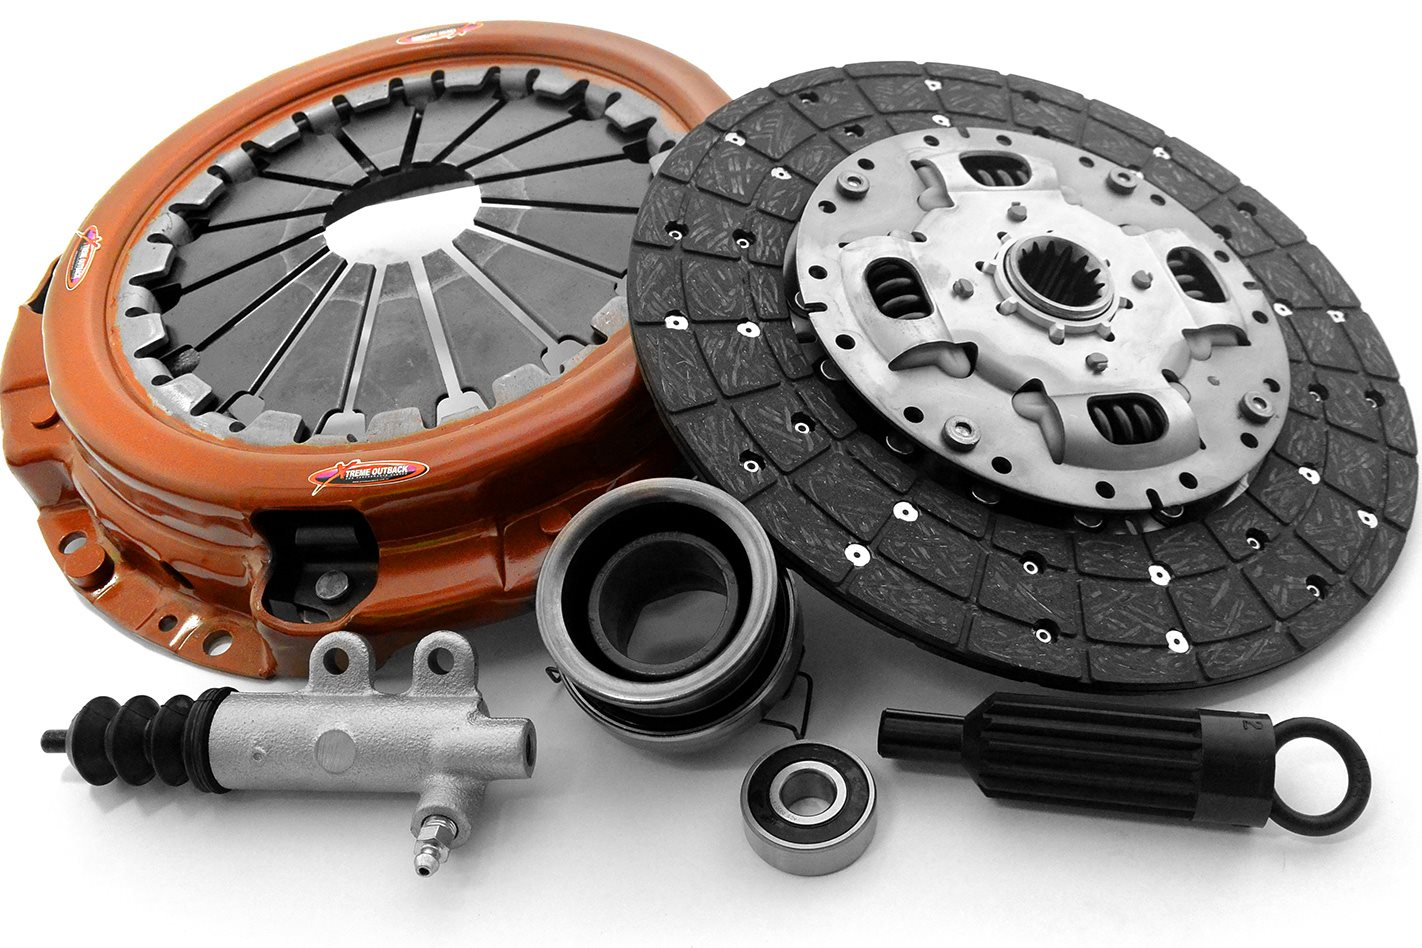 Xtreme Outback clutch kit